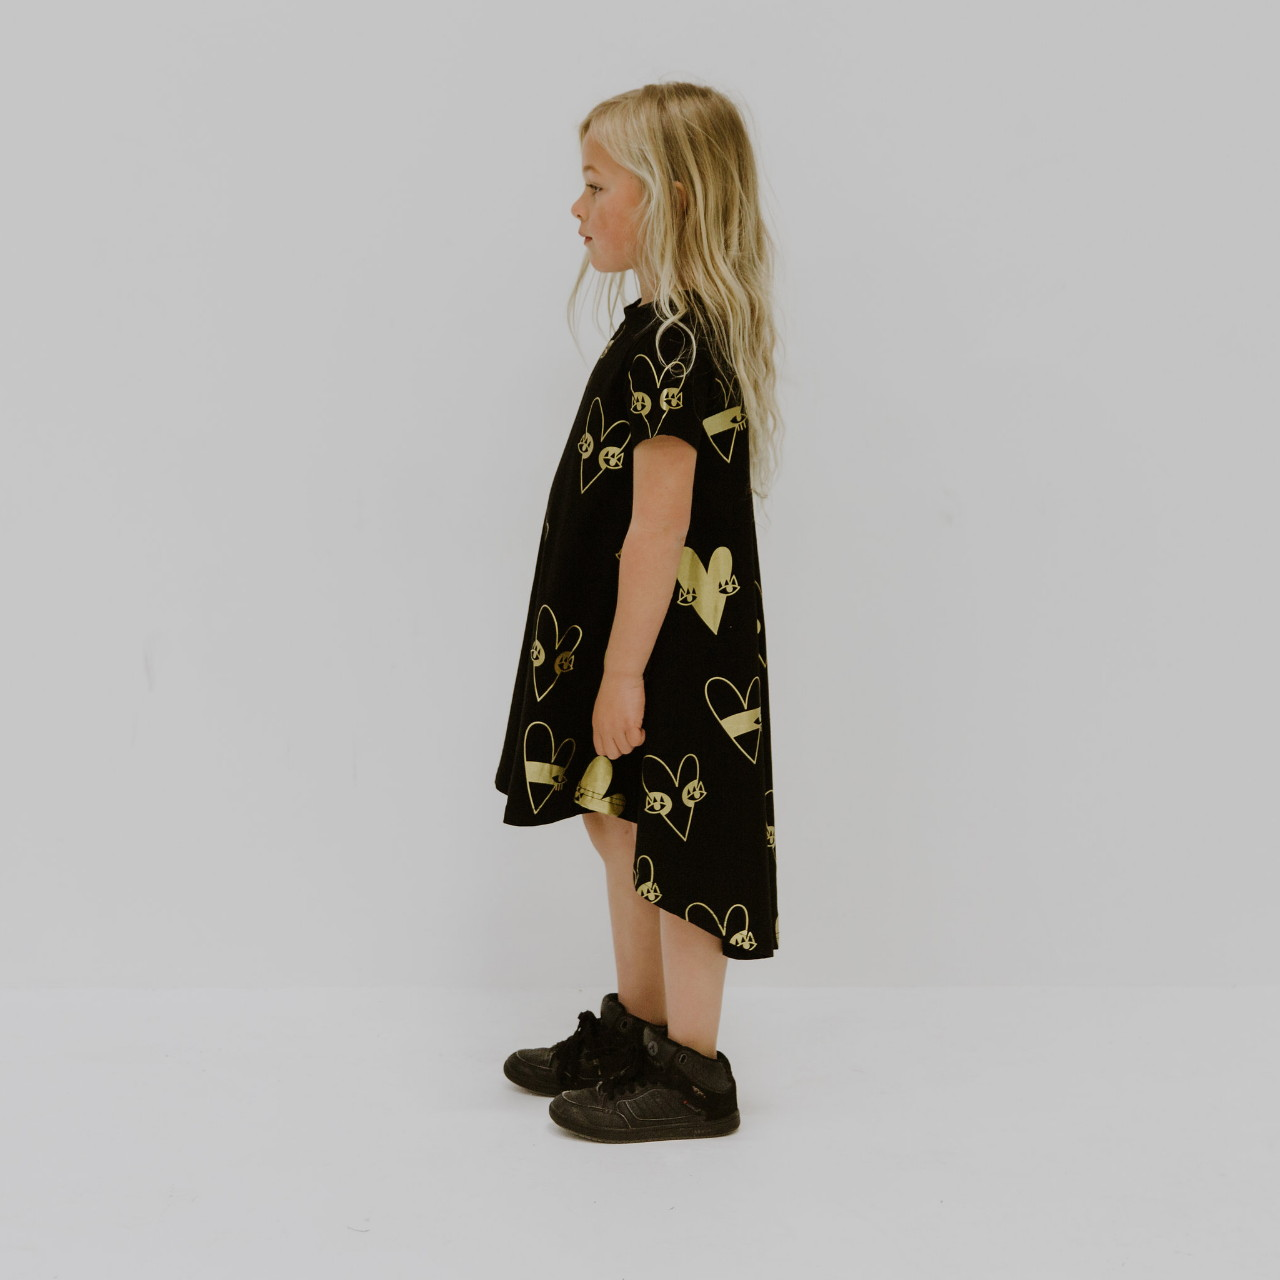 Black & Gold Heart Dress by Punk Baby